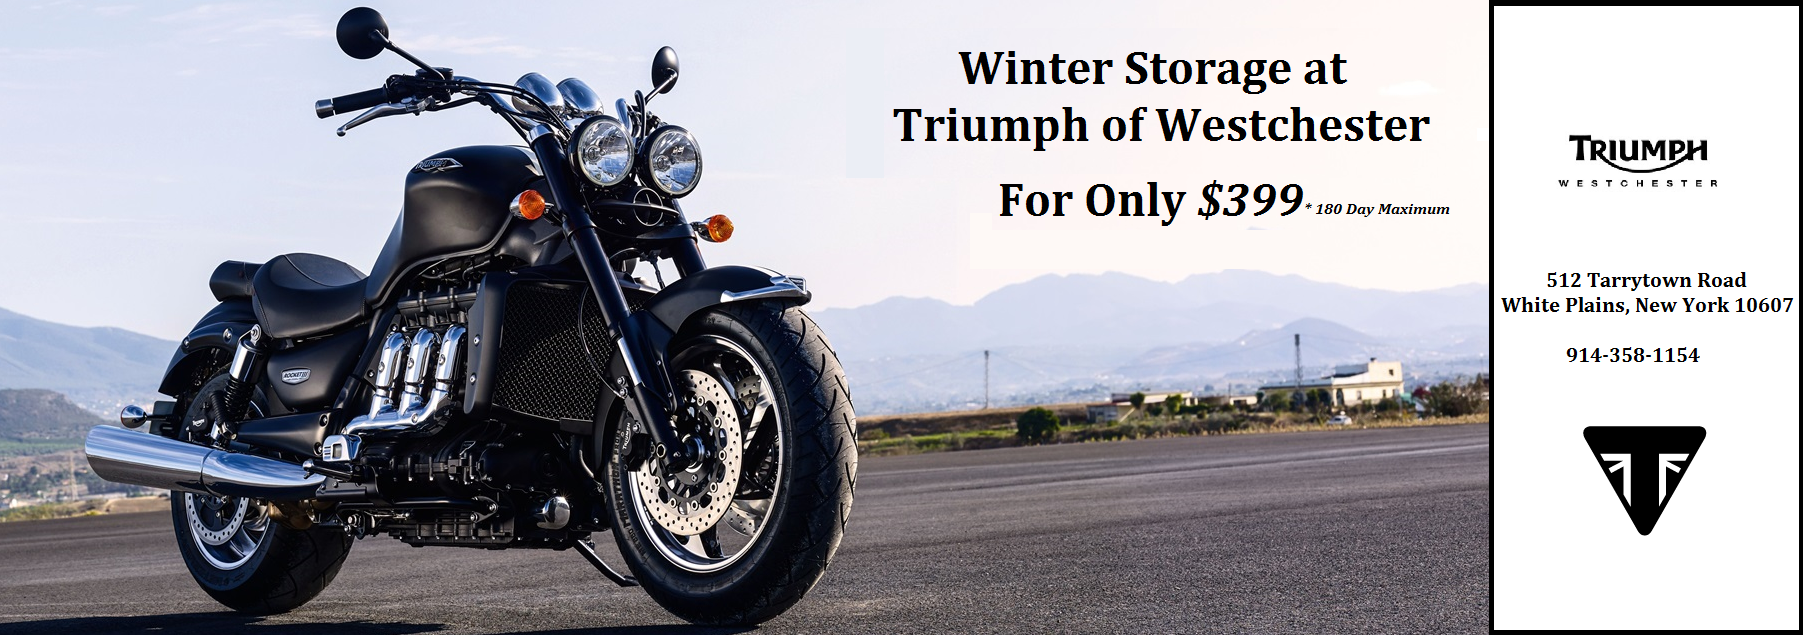 Winter Storage at Triumph of Westchester